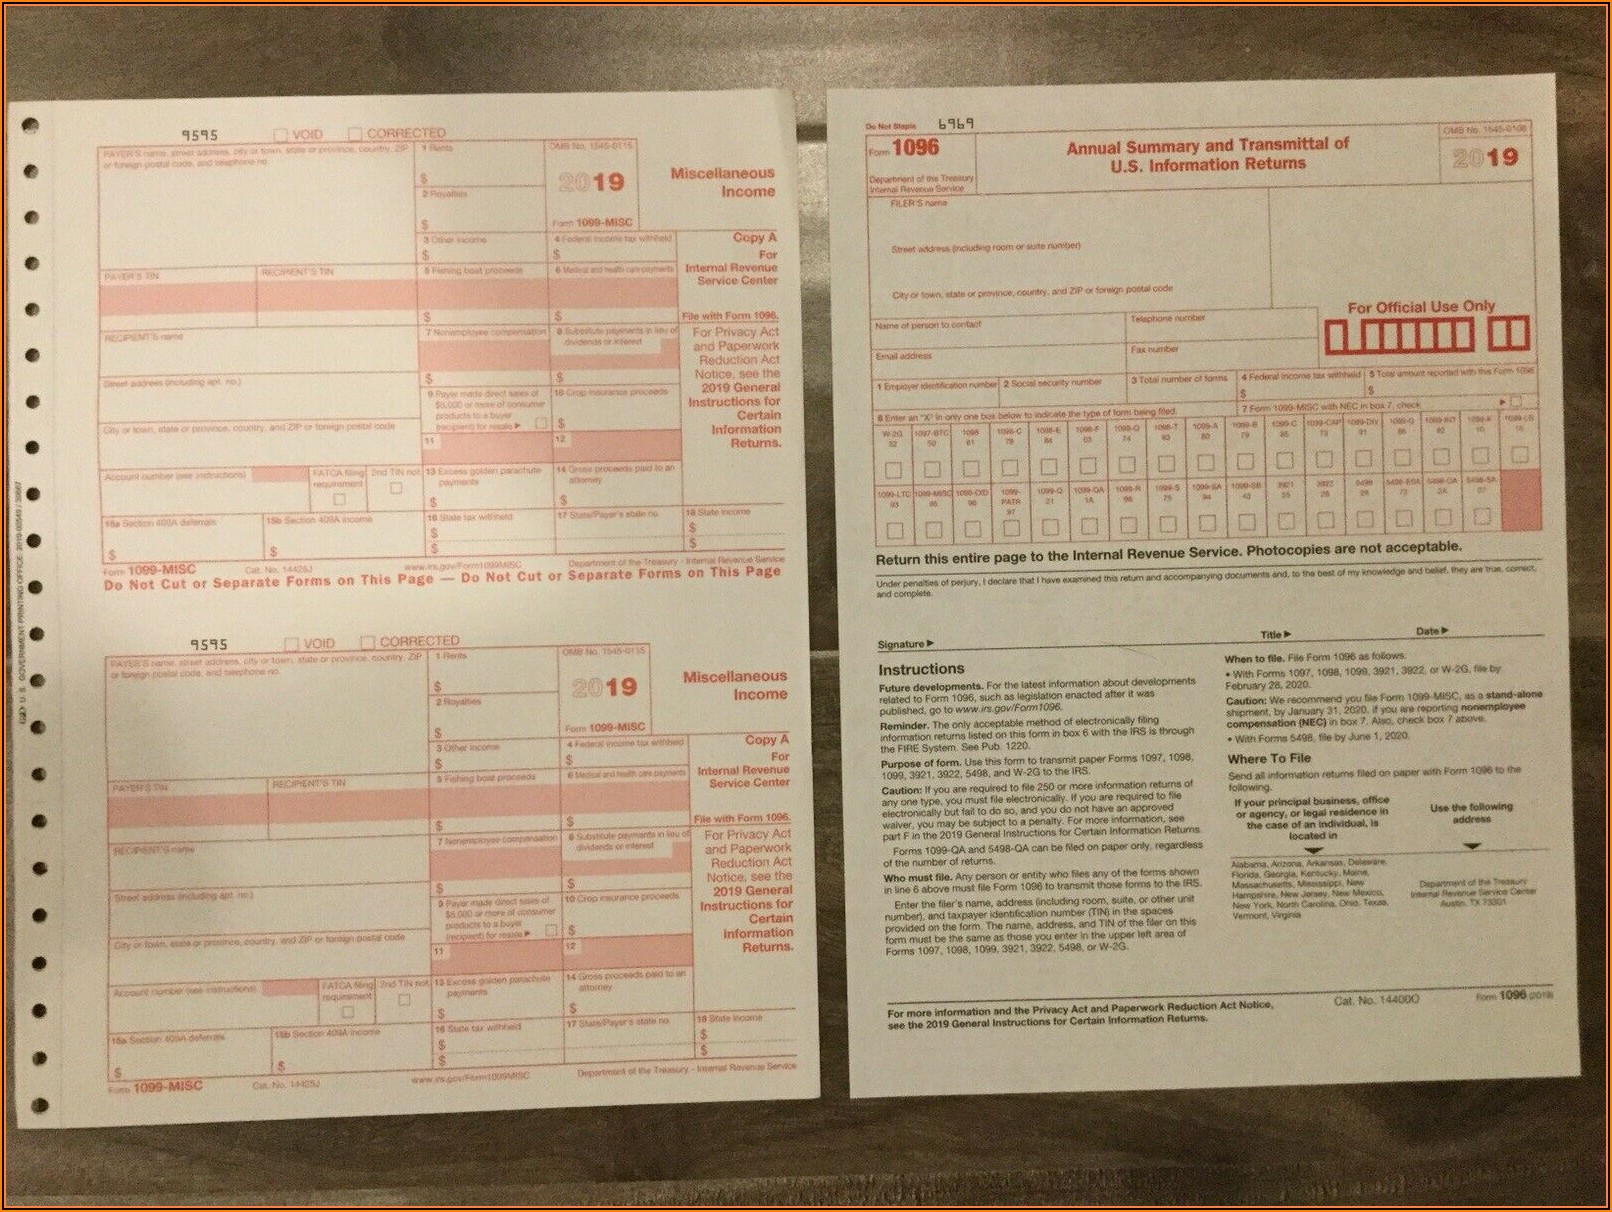 Irs Tax Forms 1099 Misc 2019